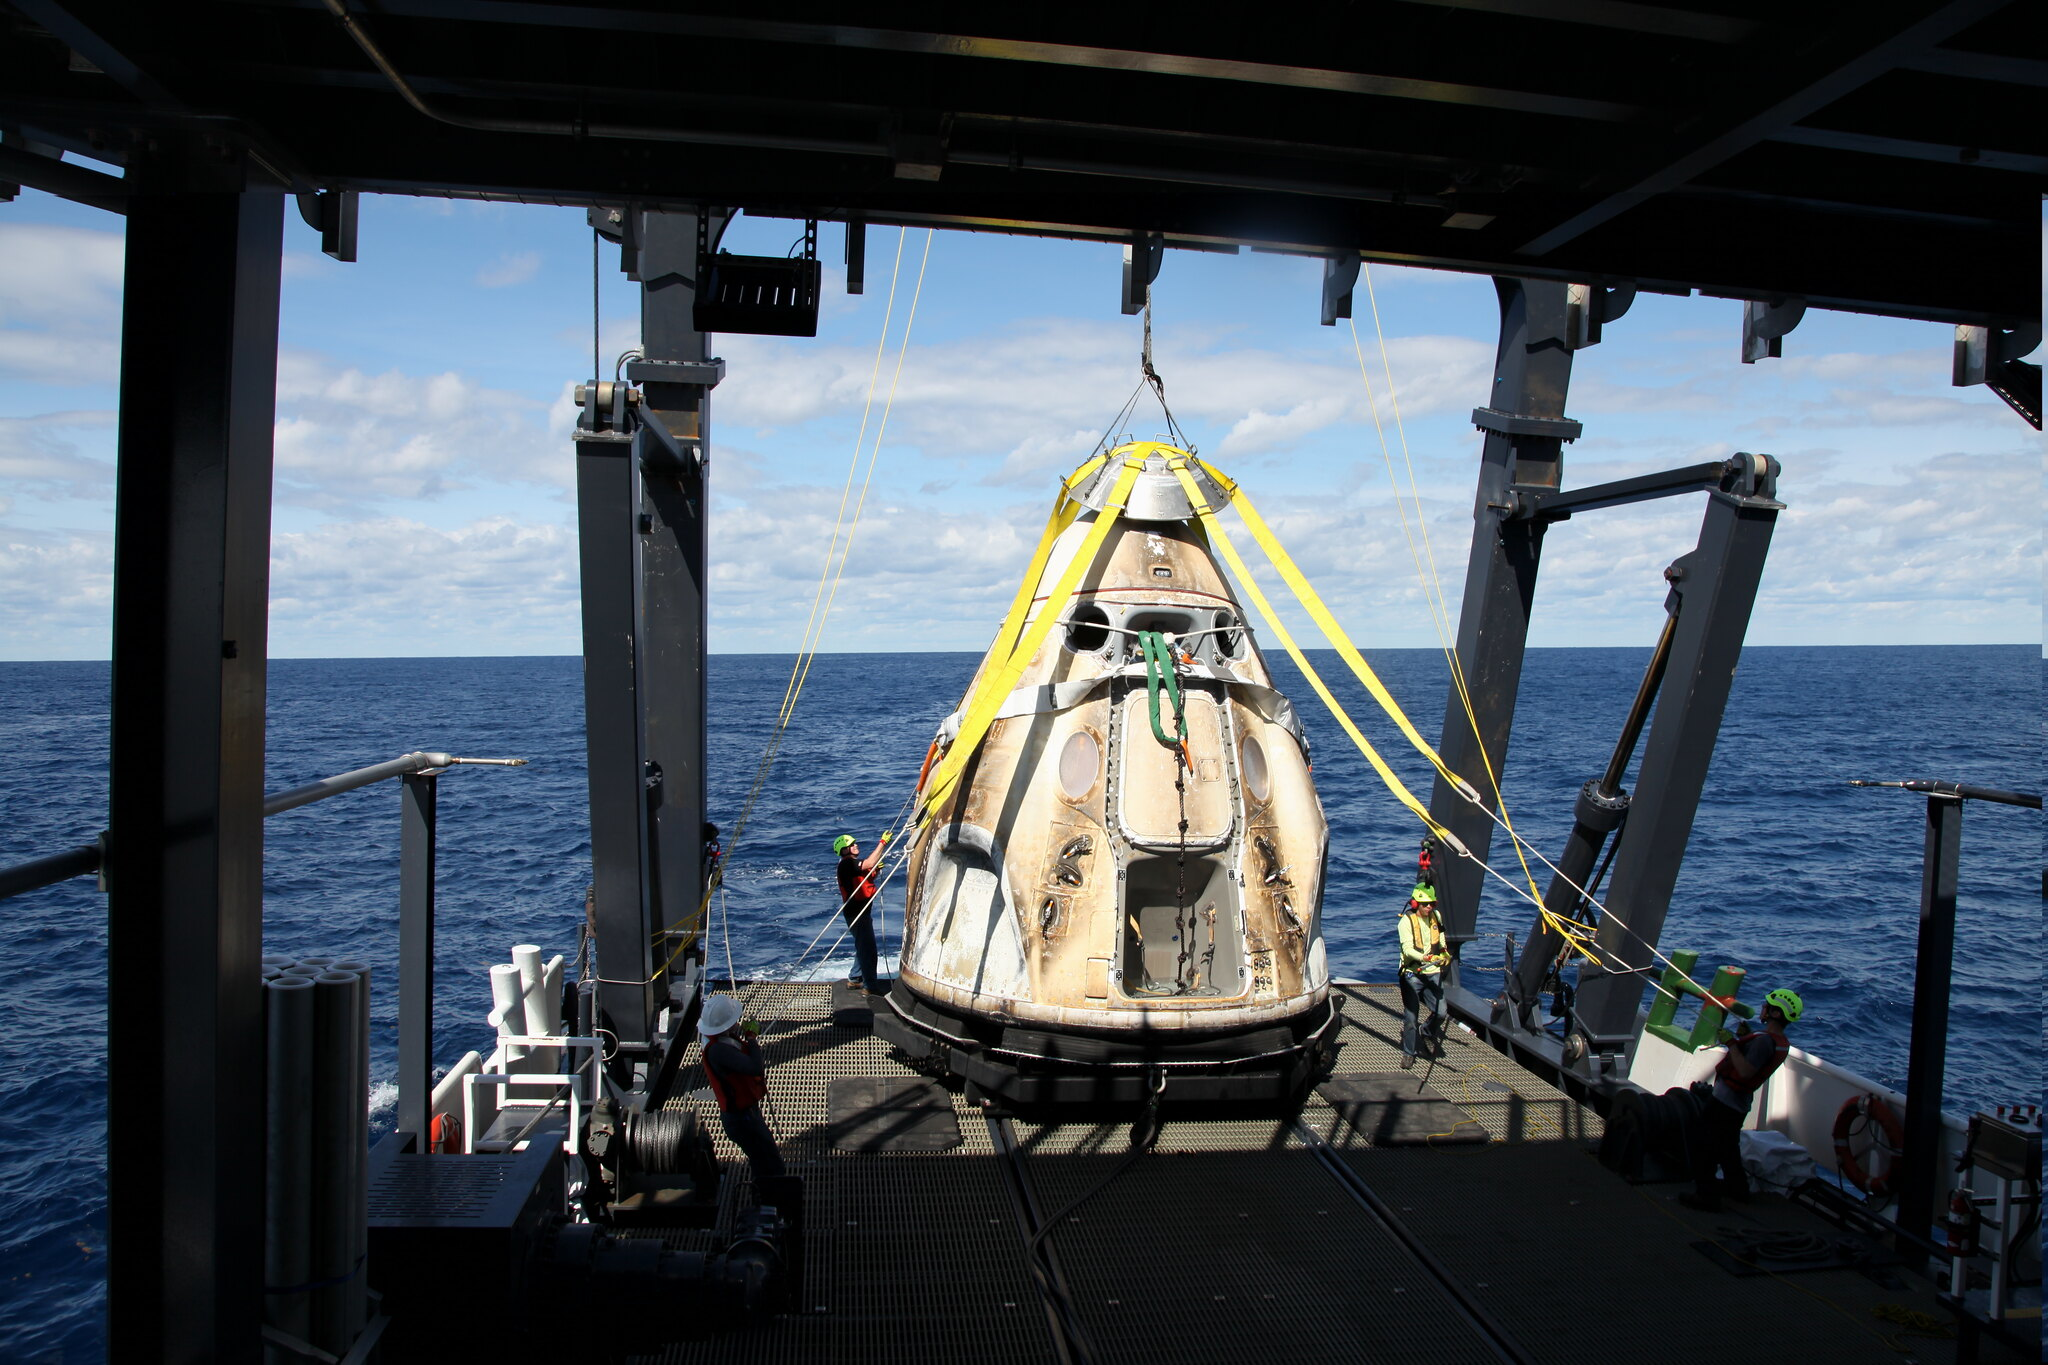 SpaceX Demo-1 Crew Dragon Capsule Recovery